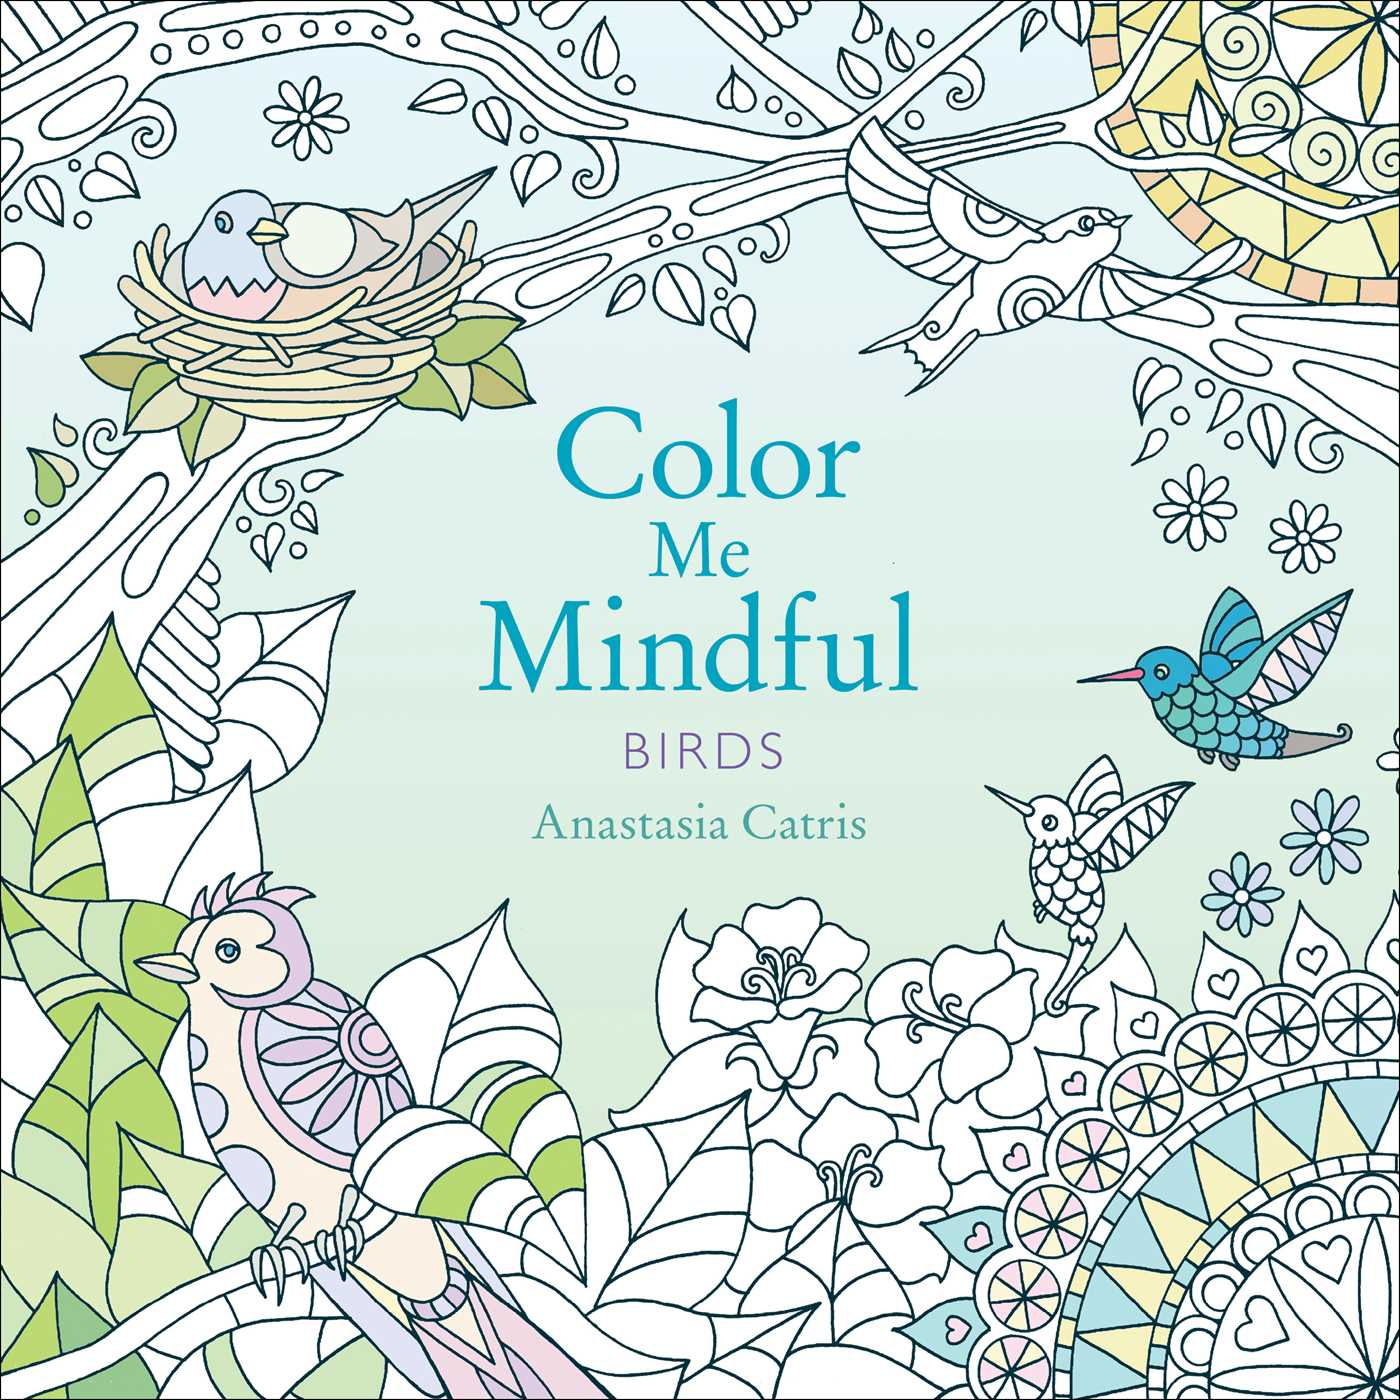 Color Me Mindful Birds Book By Anastasia Catris